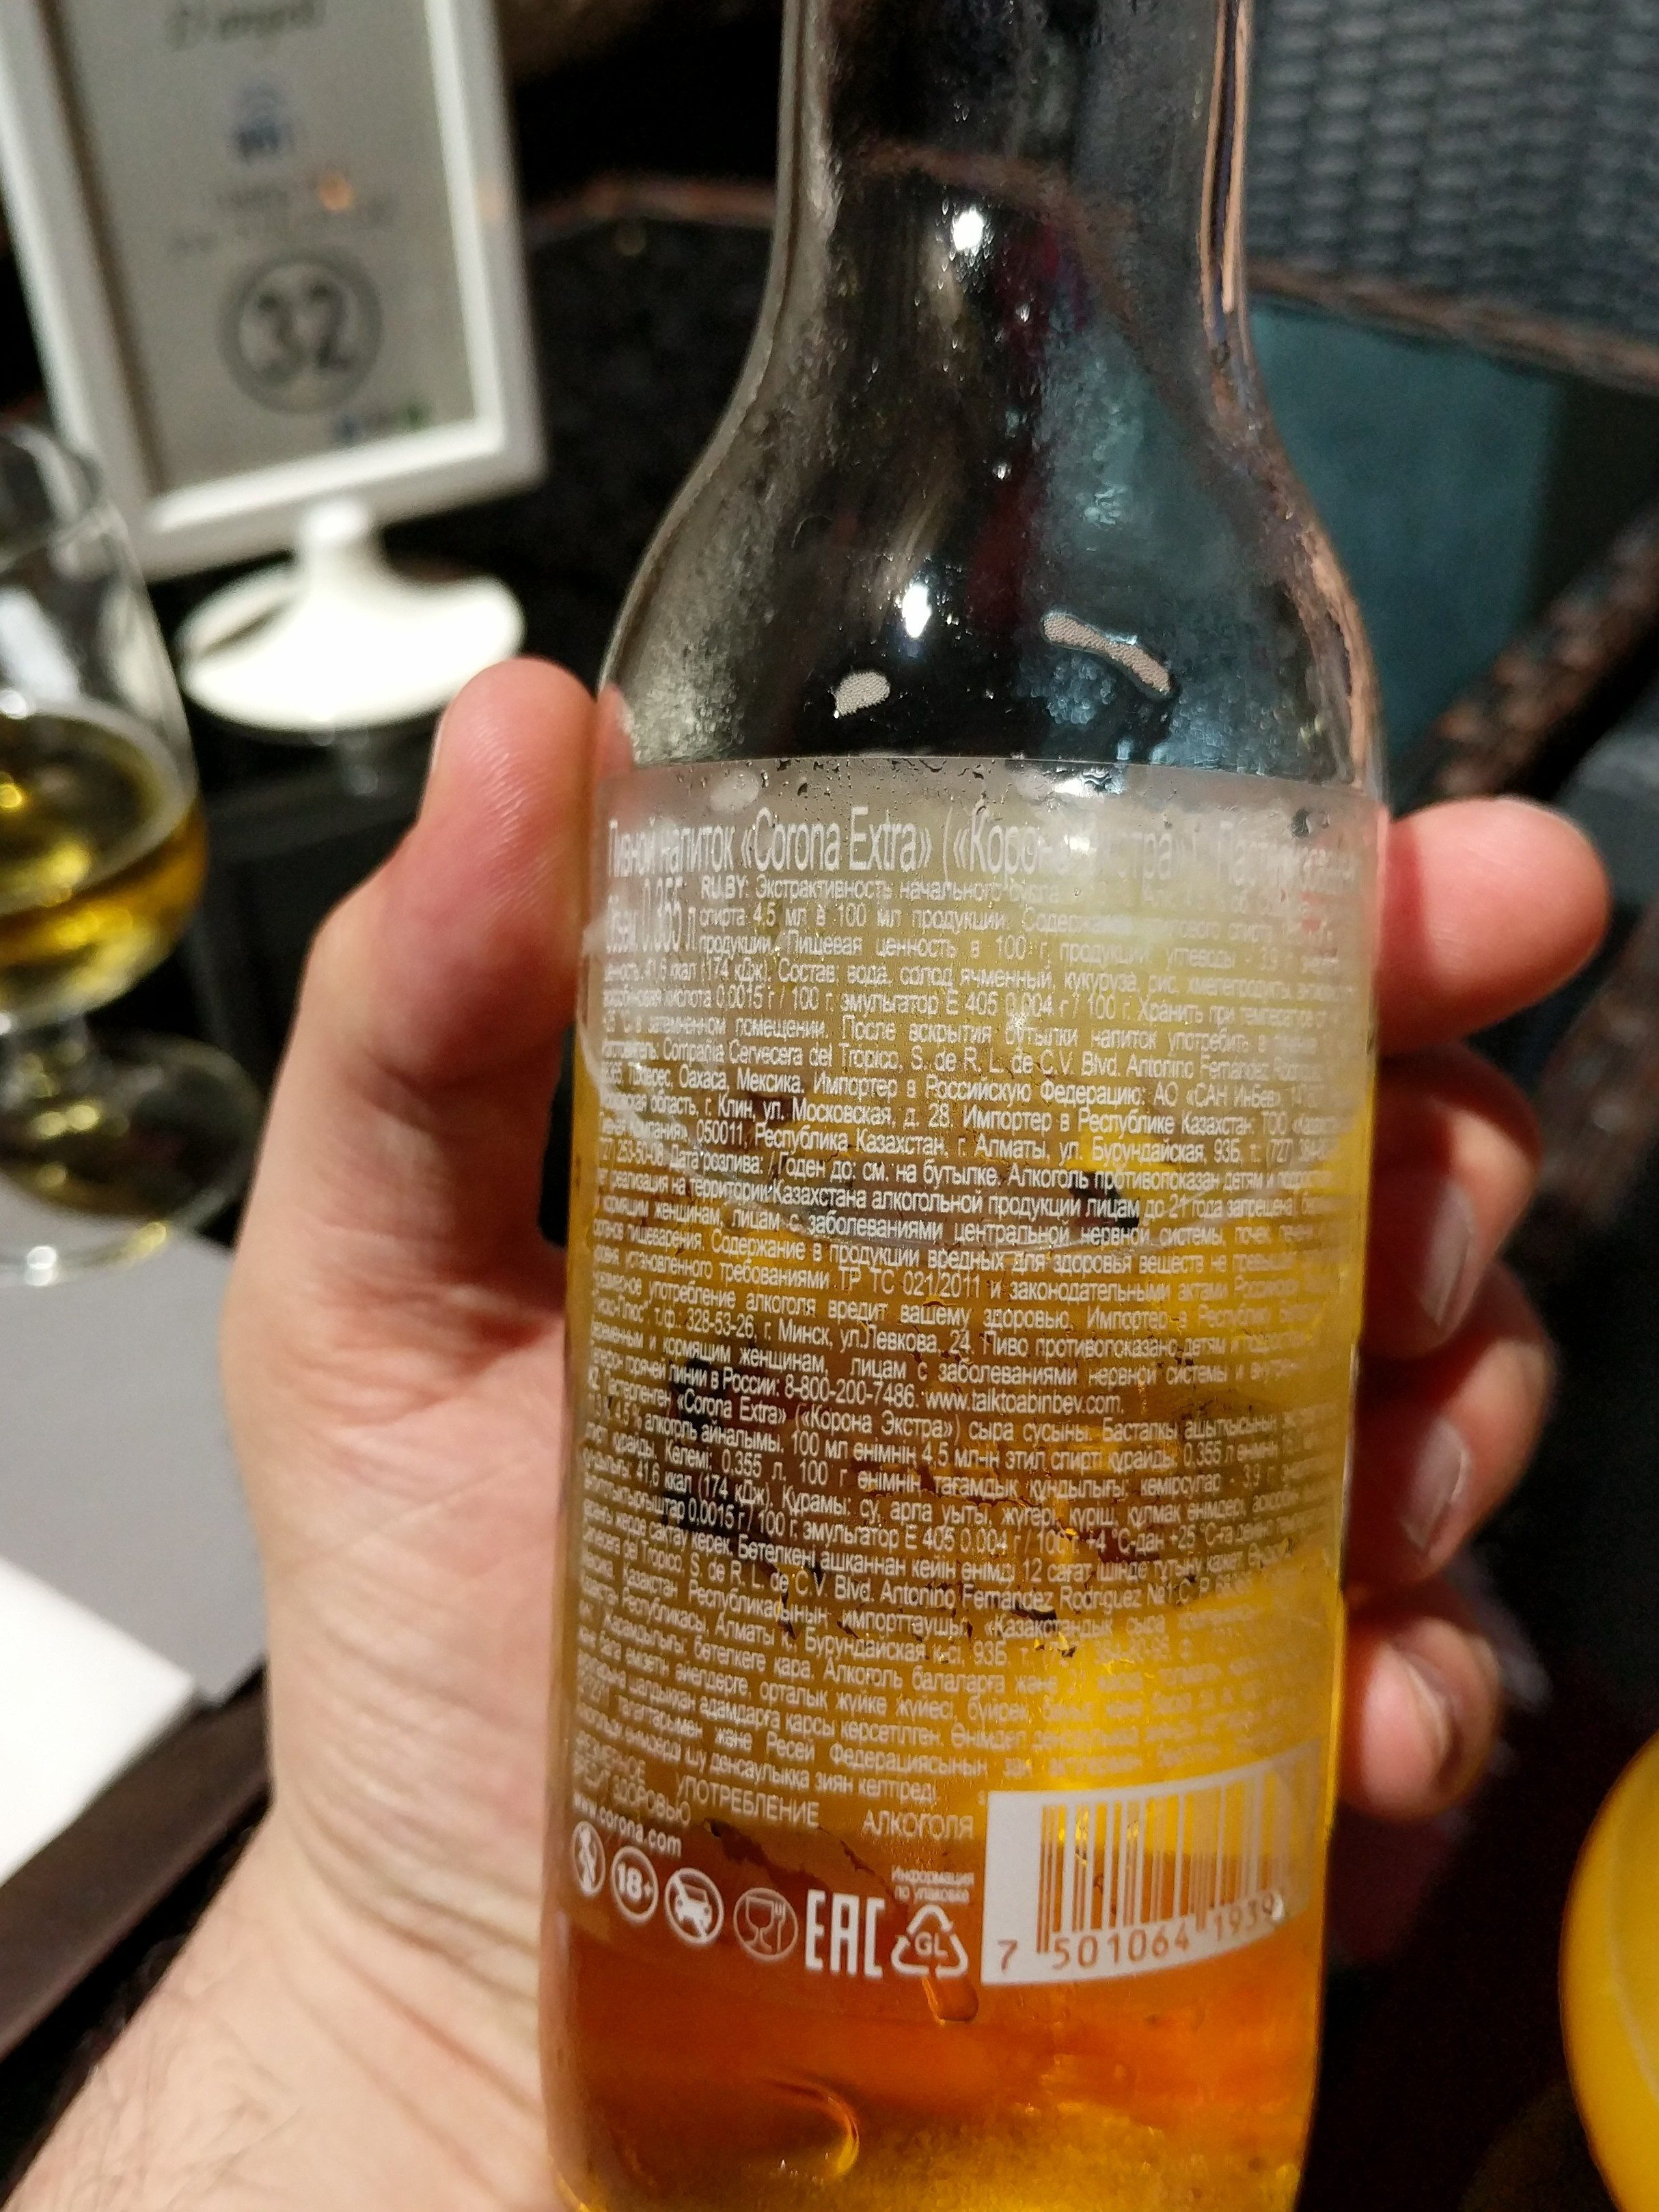 how many carbs in a bottle of corona extra